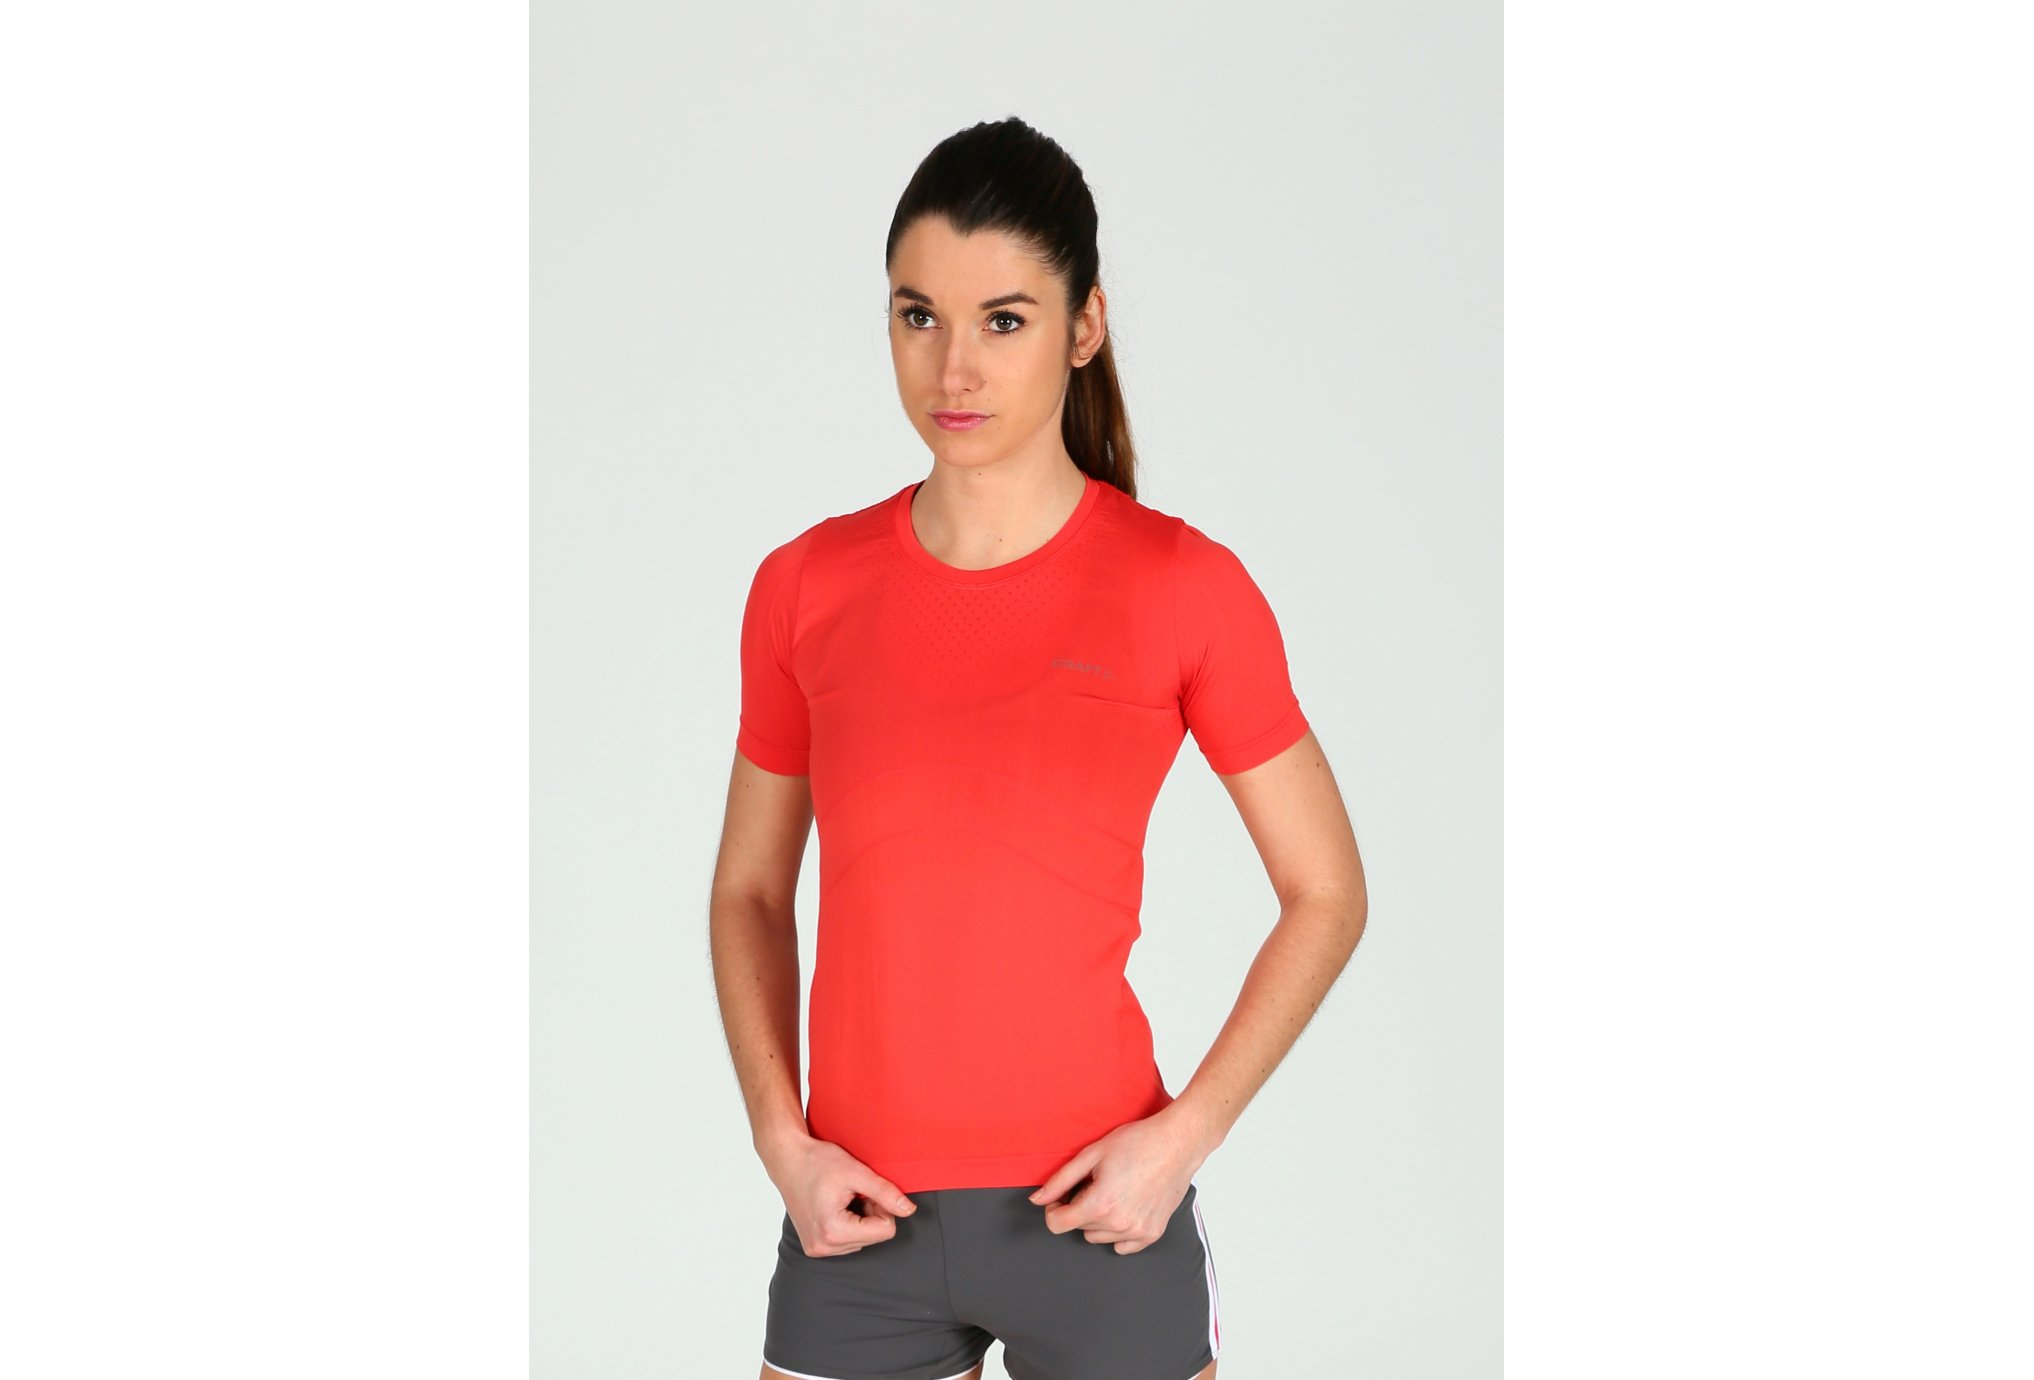 Craft Tee-shirt Stay Cool Seamless W Diététique Vêtements femme